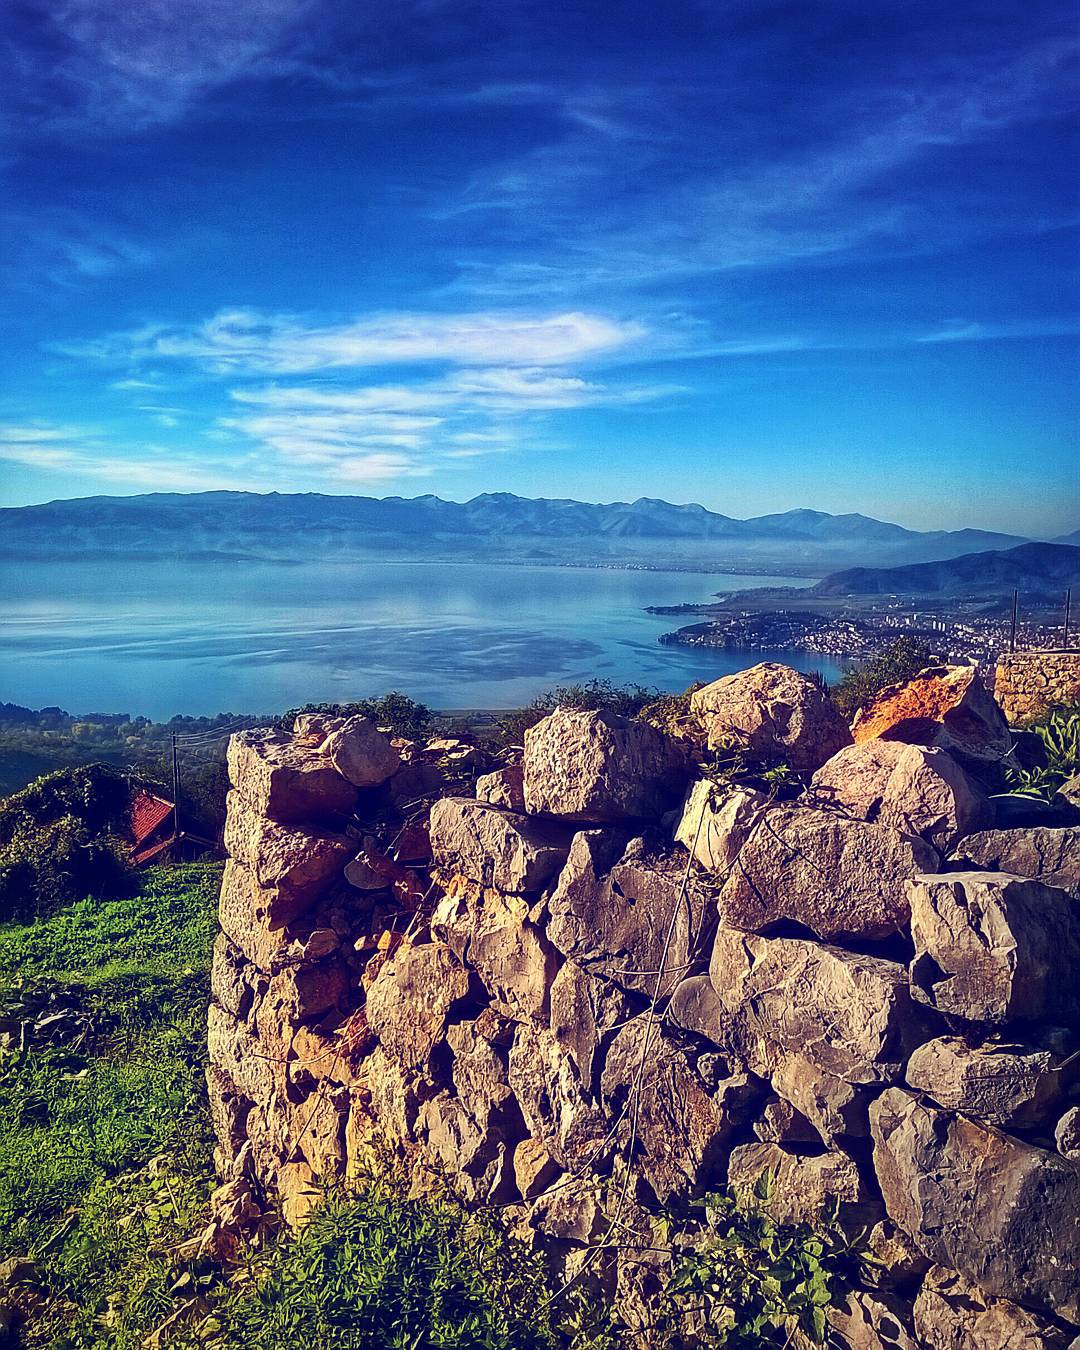 Just get a little higher and everything looks better than it already is. #ohrid #ohridlake #horizon #photographyel